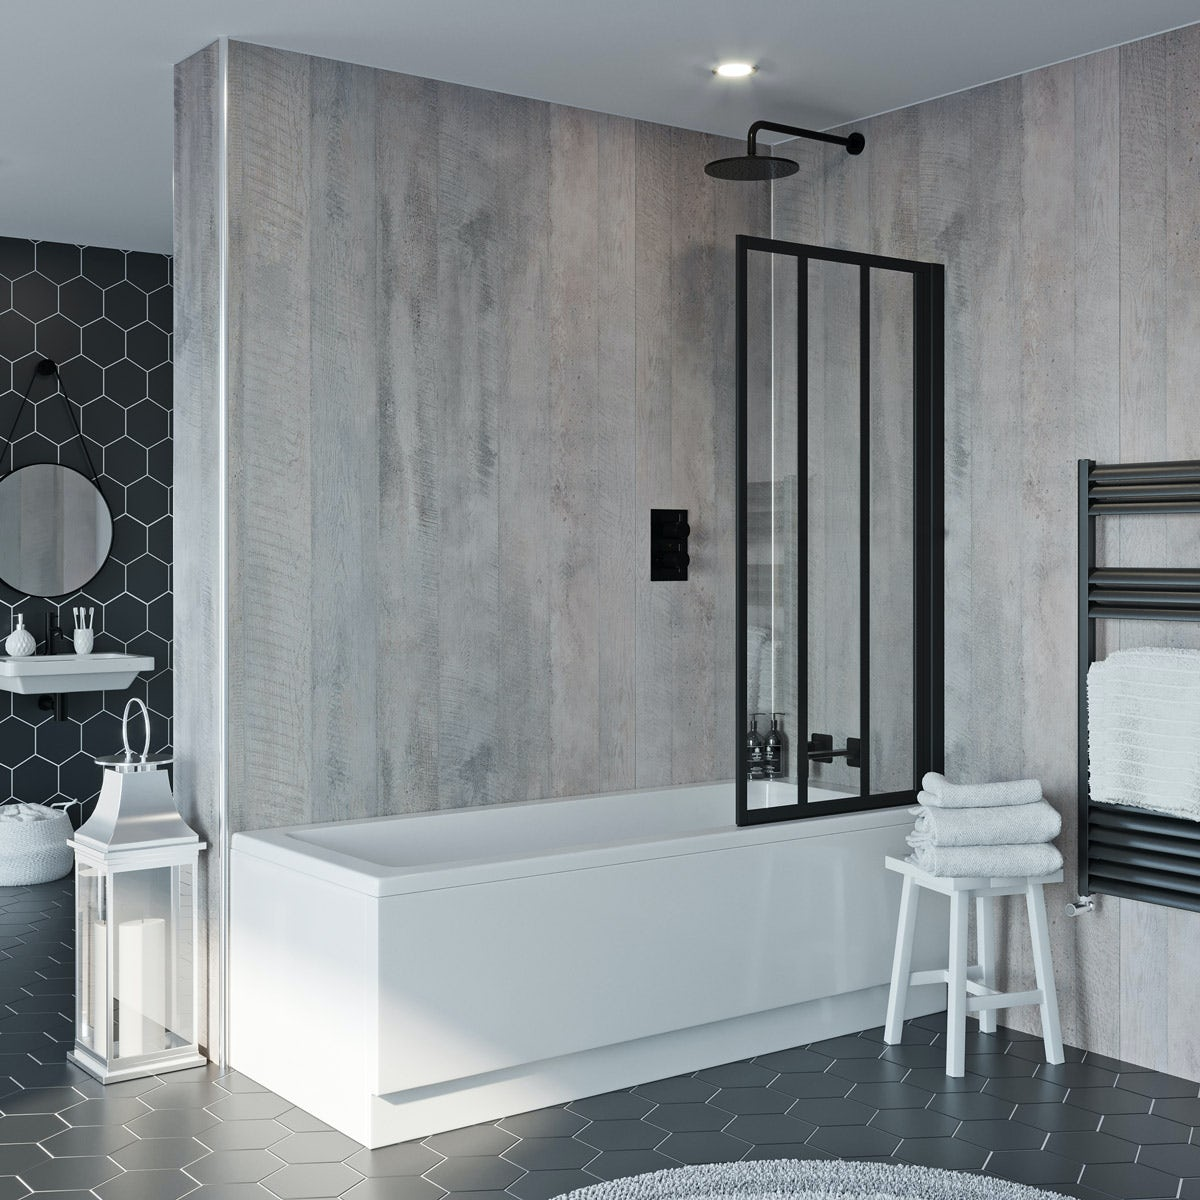 Hinged Shower Screen >> Jacuzzi Loft black framed hinged shower bath screen | VictoriaPlum.com